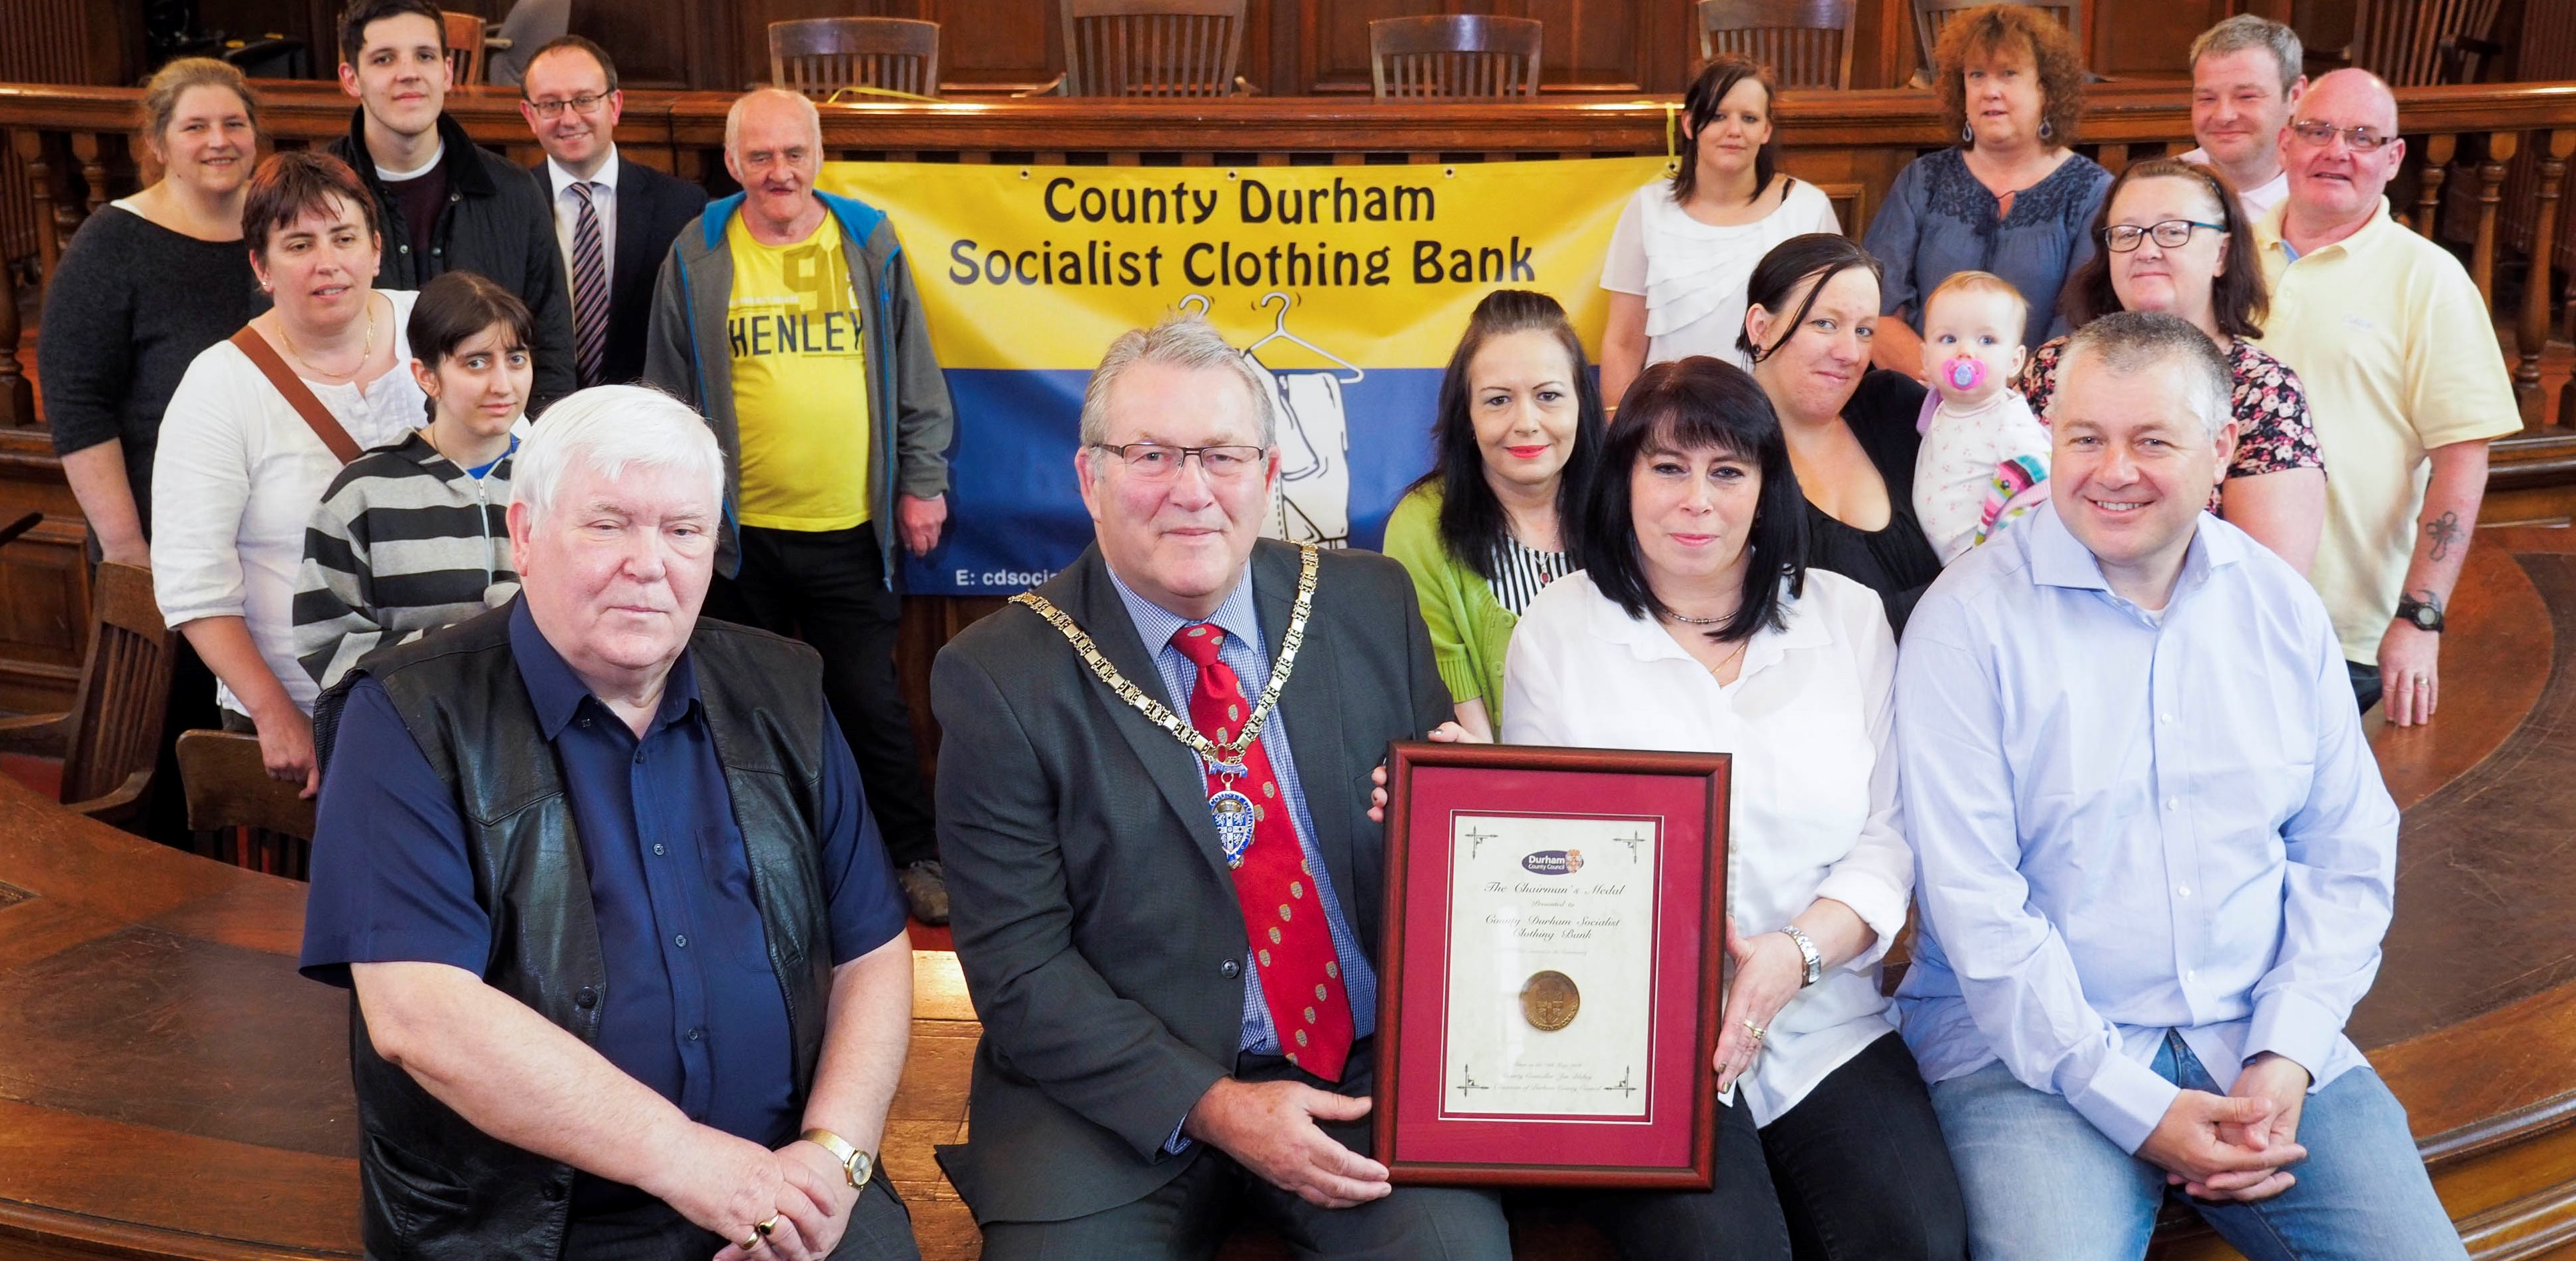 Presentation ceremony of 'The Chairman's Medal' by Durham Council to the County Durham Socialist Clothing Bank, Redhills, Durham, 18/5 2016. Clothing bank volunteers with front row l to r: Dave Hopper, Cllr Eddie Bell, (vice chairman of Durham County Council), Dawn Willson, (two l's) and Trevor Bark, (Unite). Photo©: Mark Pinder +44 (0)7768 211174 pinder.photo@gmail.com